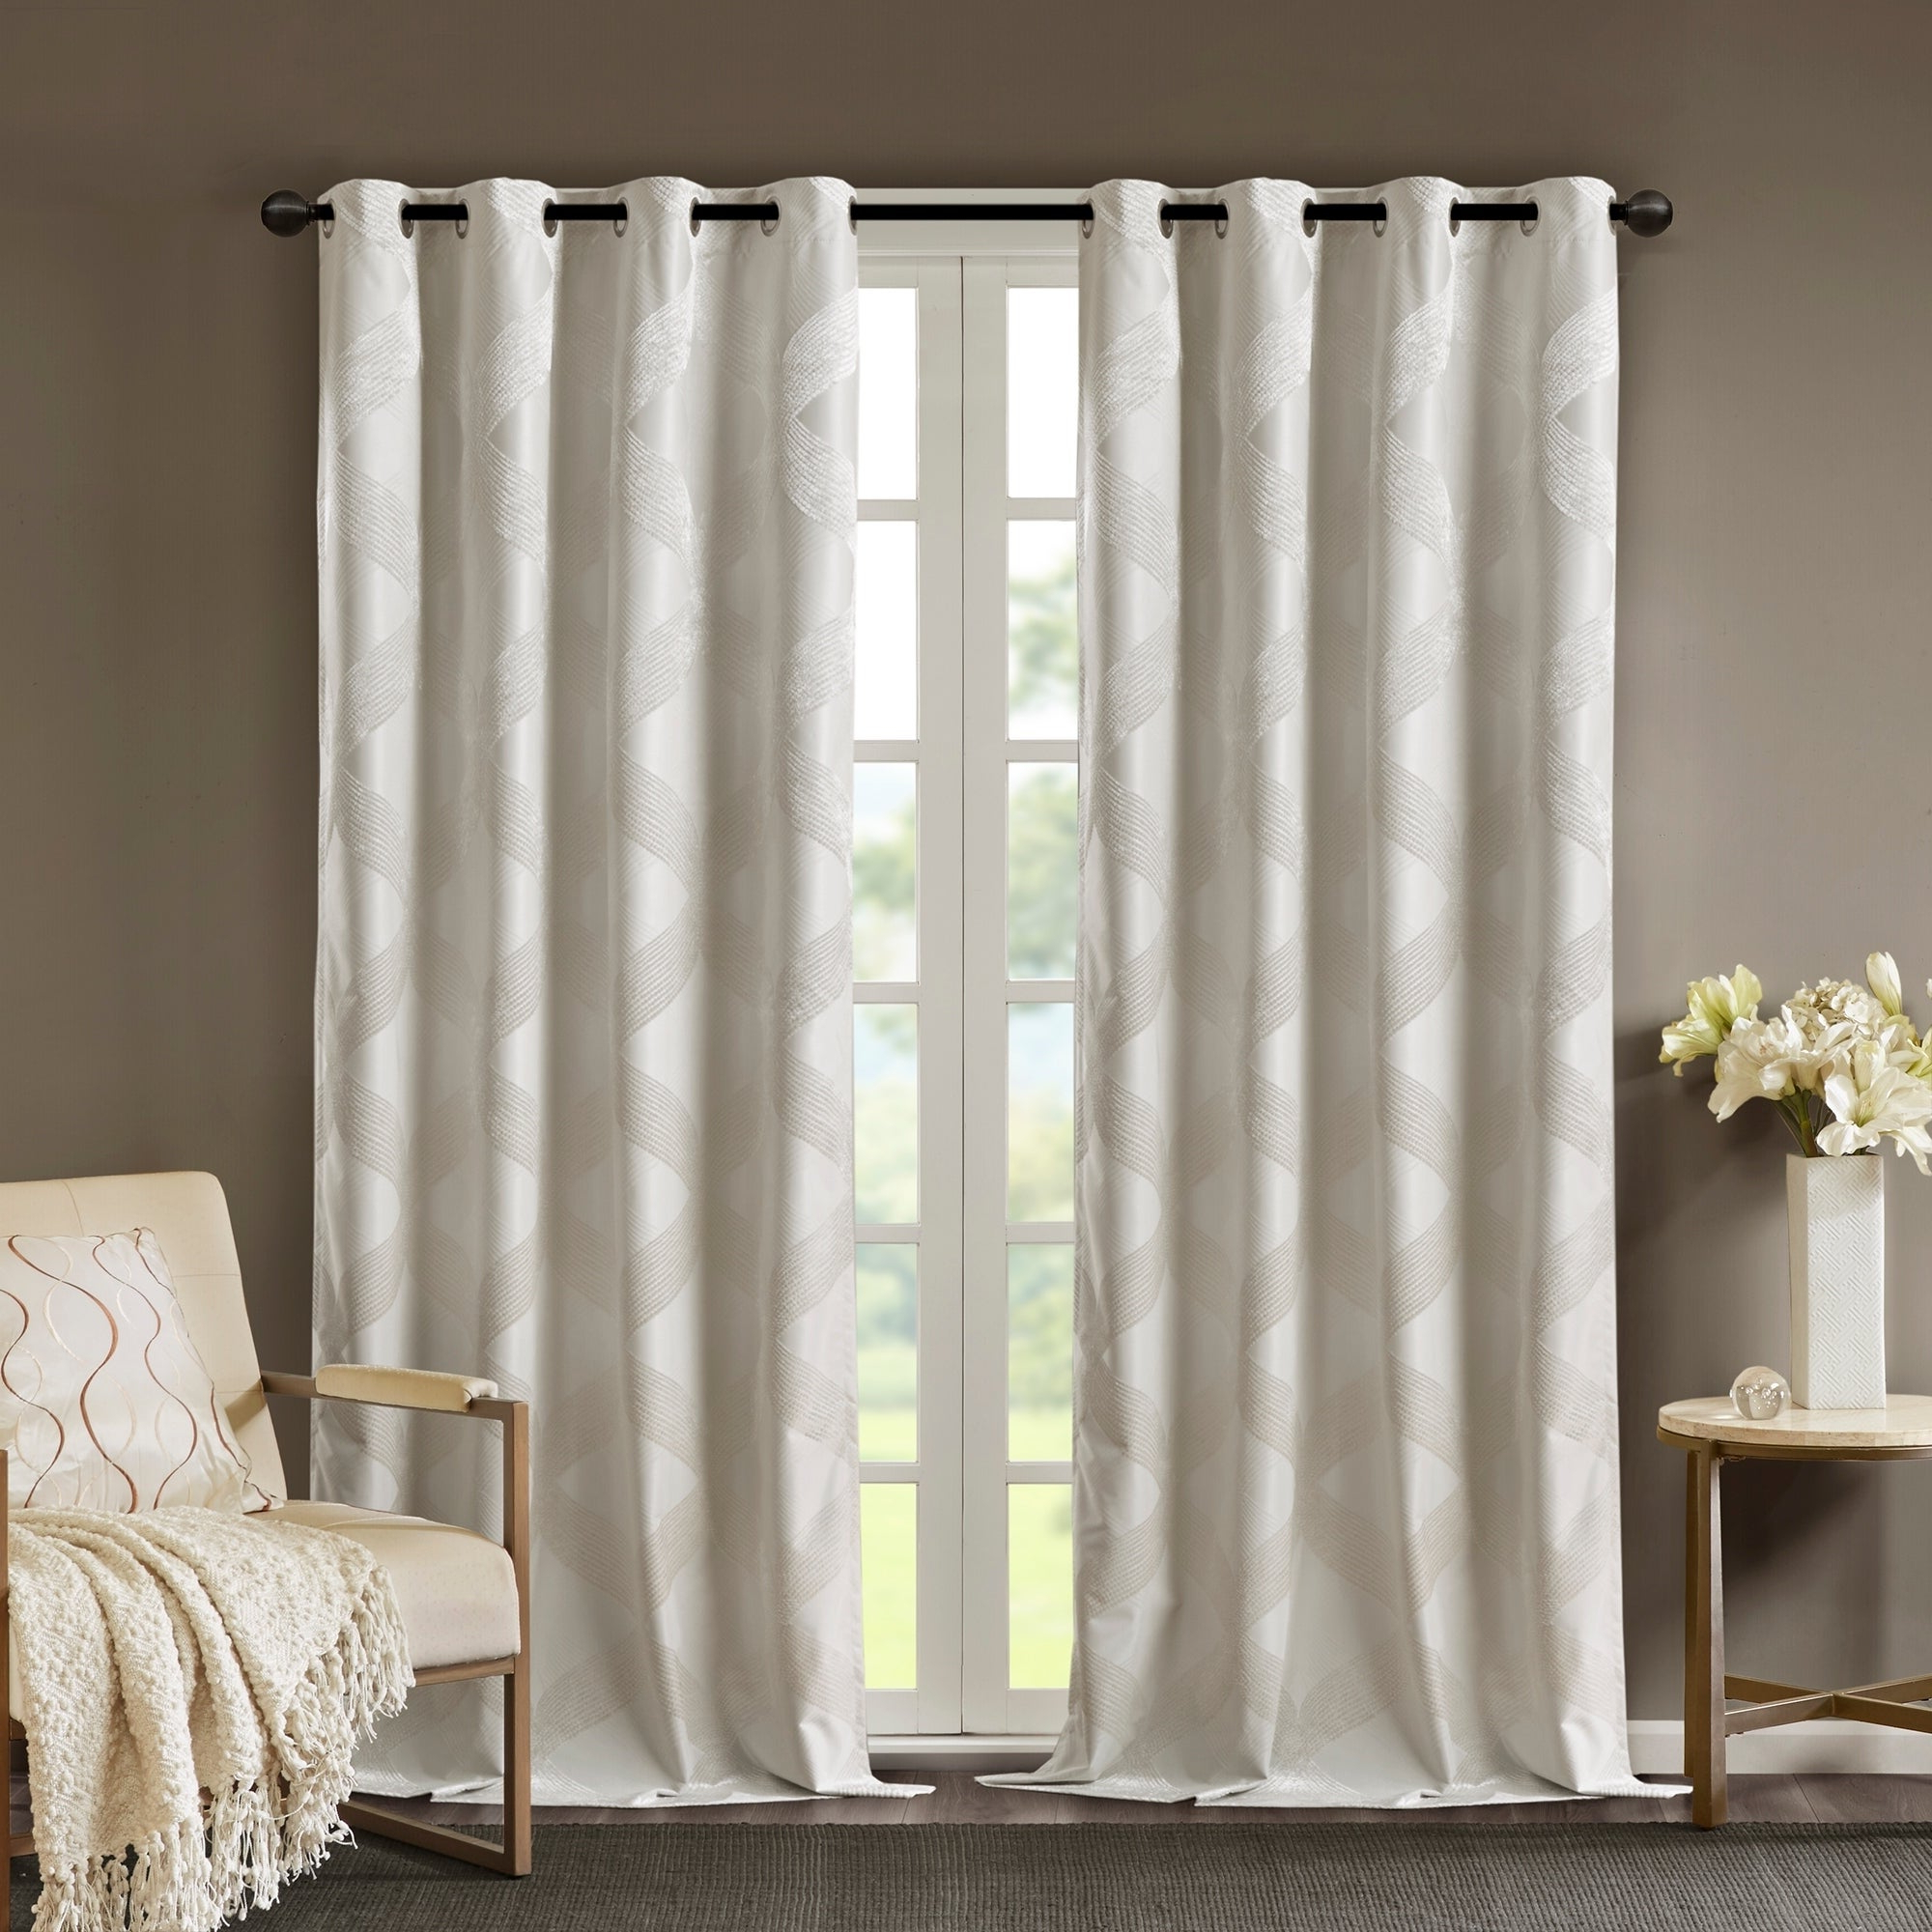 Sunsmart Abel Ogee Knitted Jacquard Total Blackout Curtain Panels In Preferred Sunsmart Abel Ogee Knitted Jacquard Total Blackout Curtain Panel (View 12 of 20)